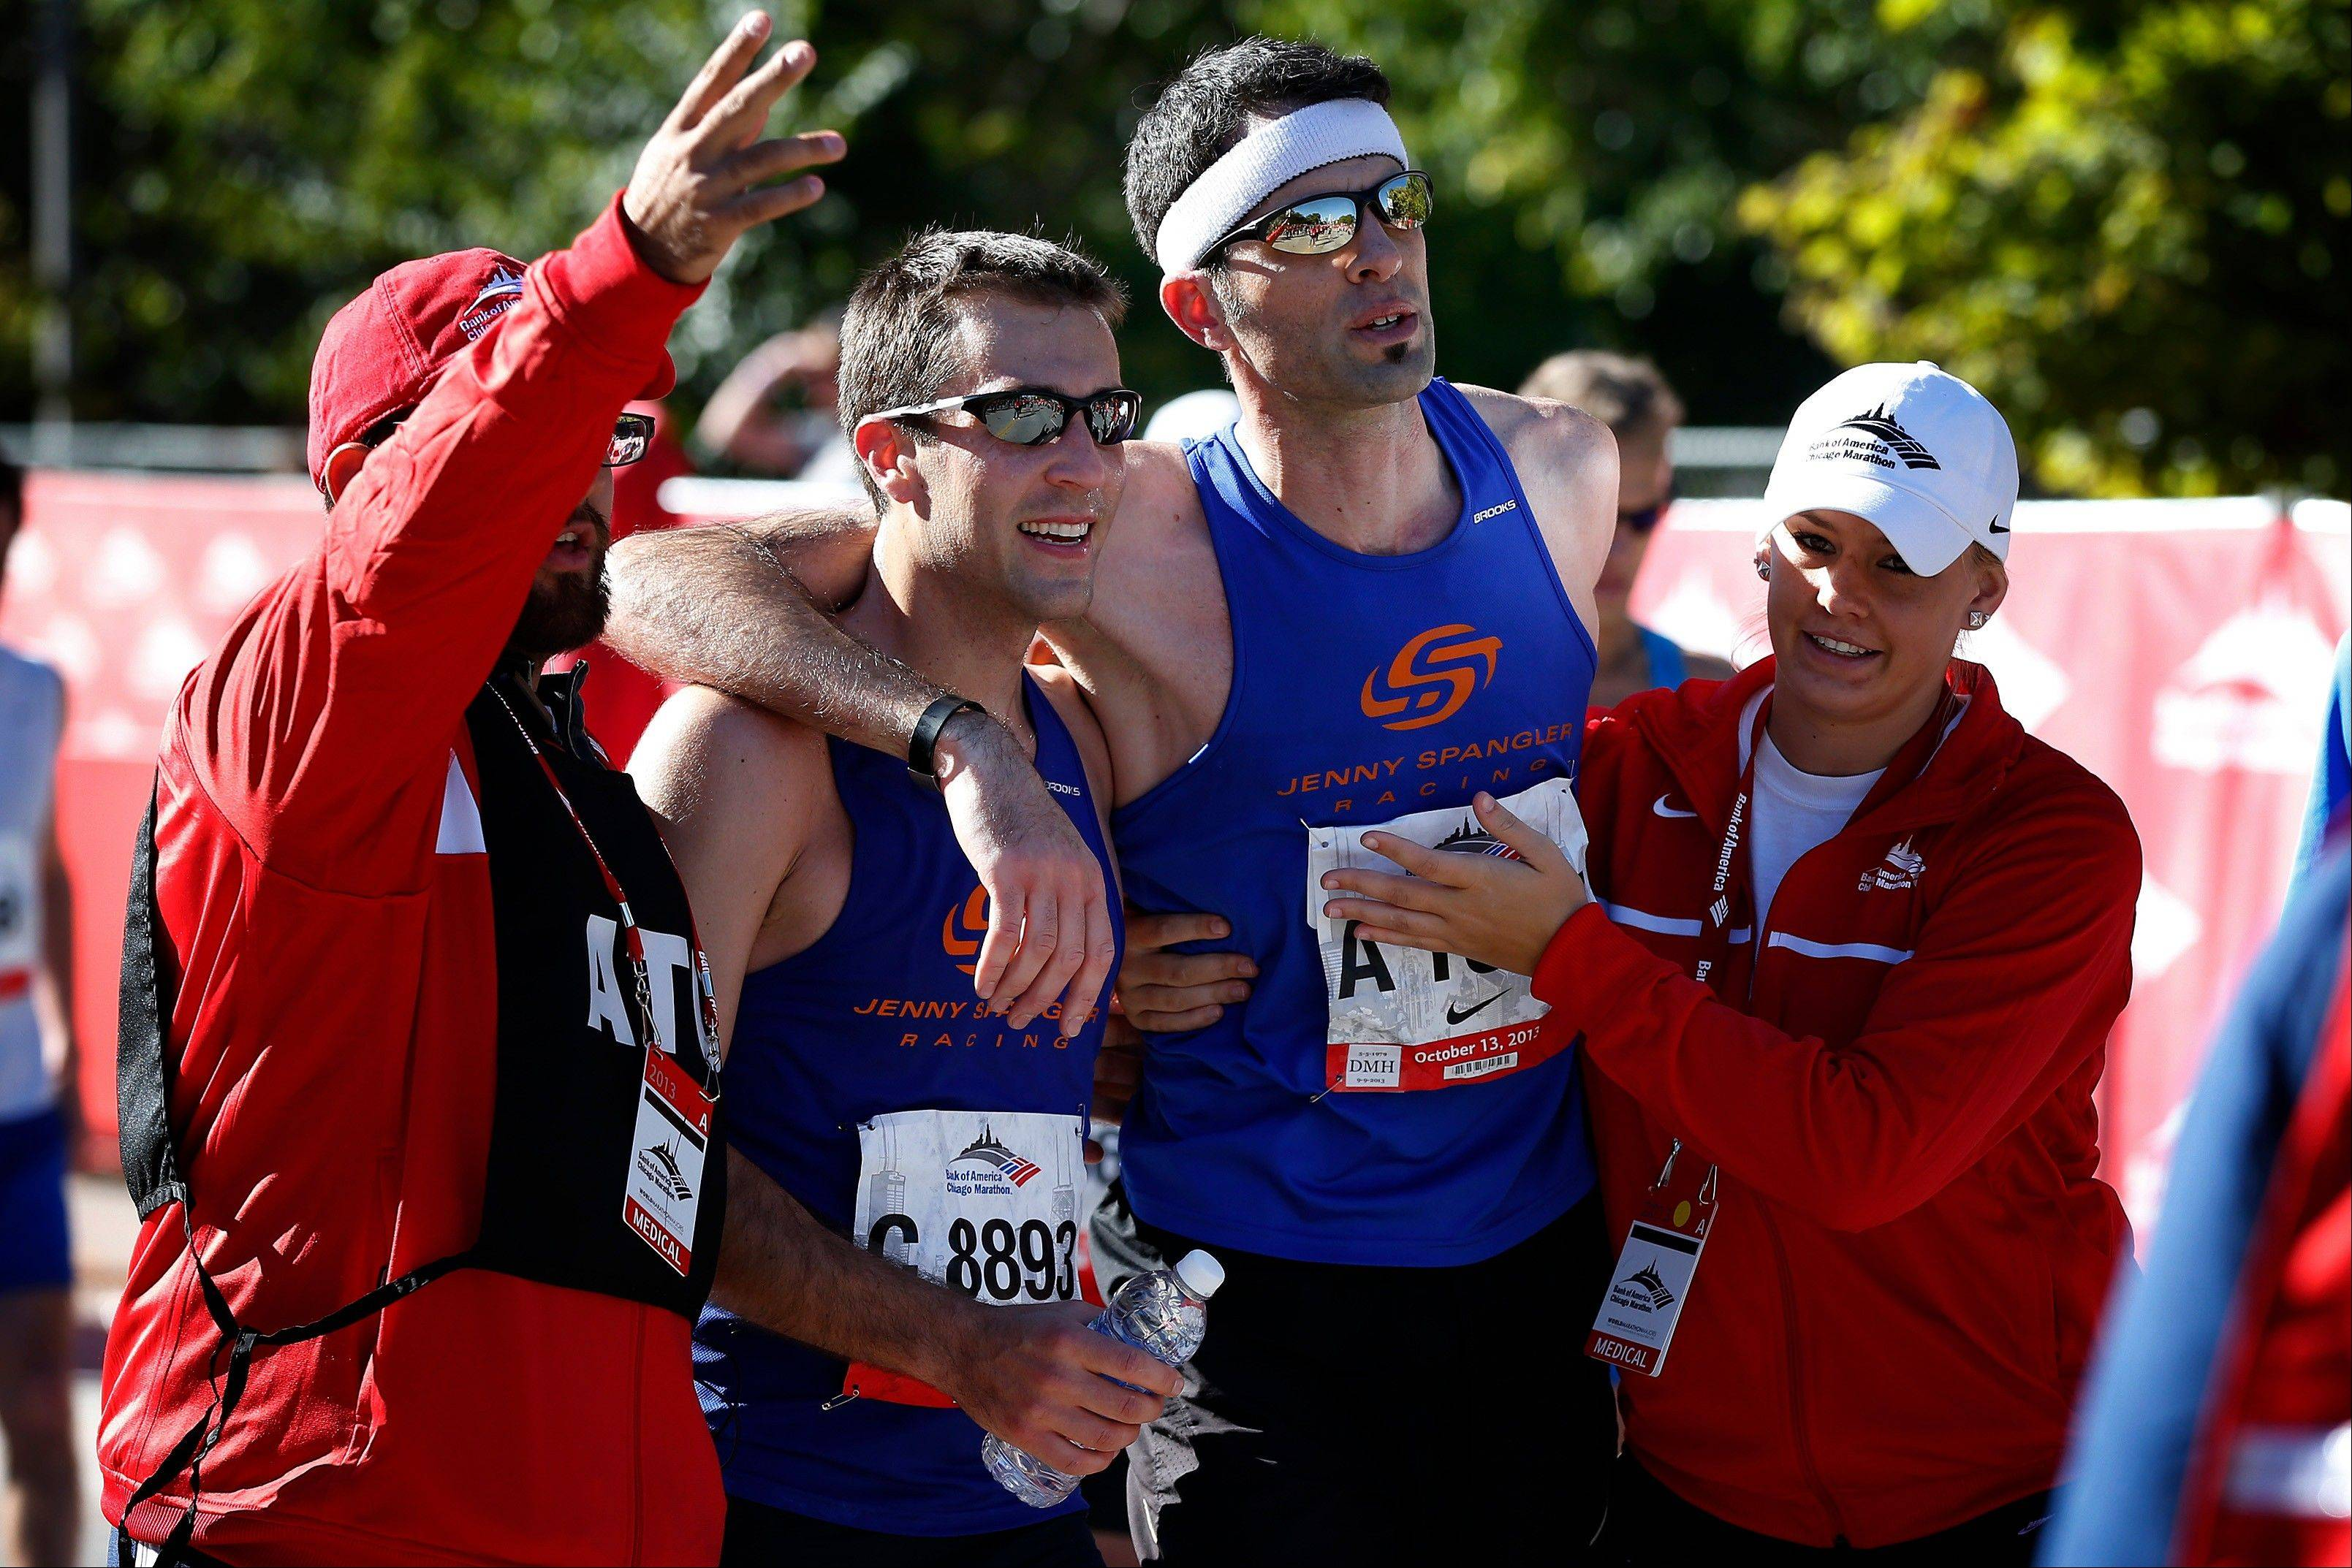 Lytle Smith, center left, of Evanston, Ill., and David Zeisler, center right, of Gurnee, Ill., are assisted at the finish line during the Chicago Marathon on Sunday, Oct. 13, 2013, in Chicago.